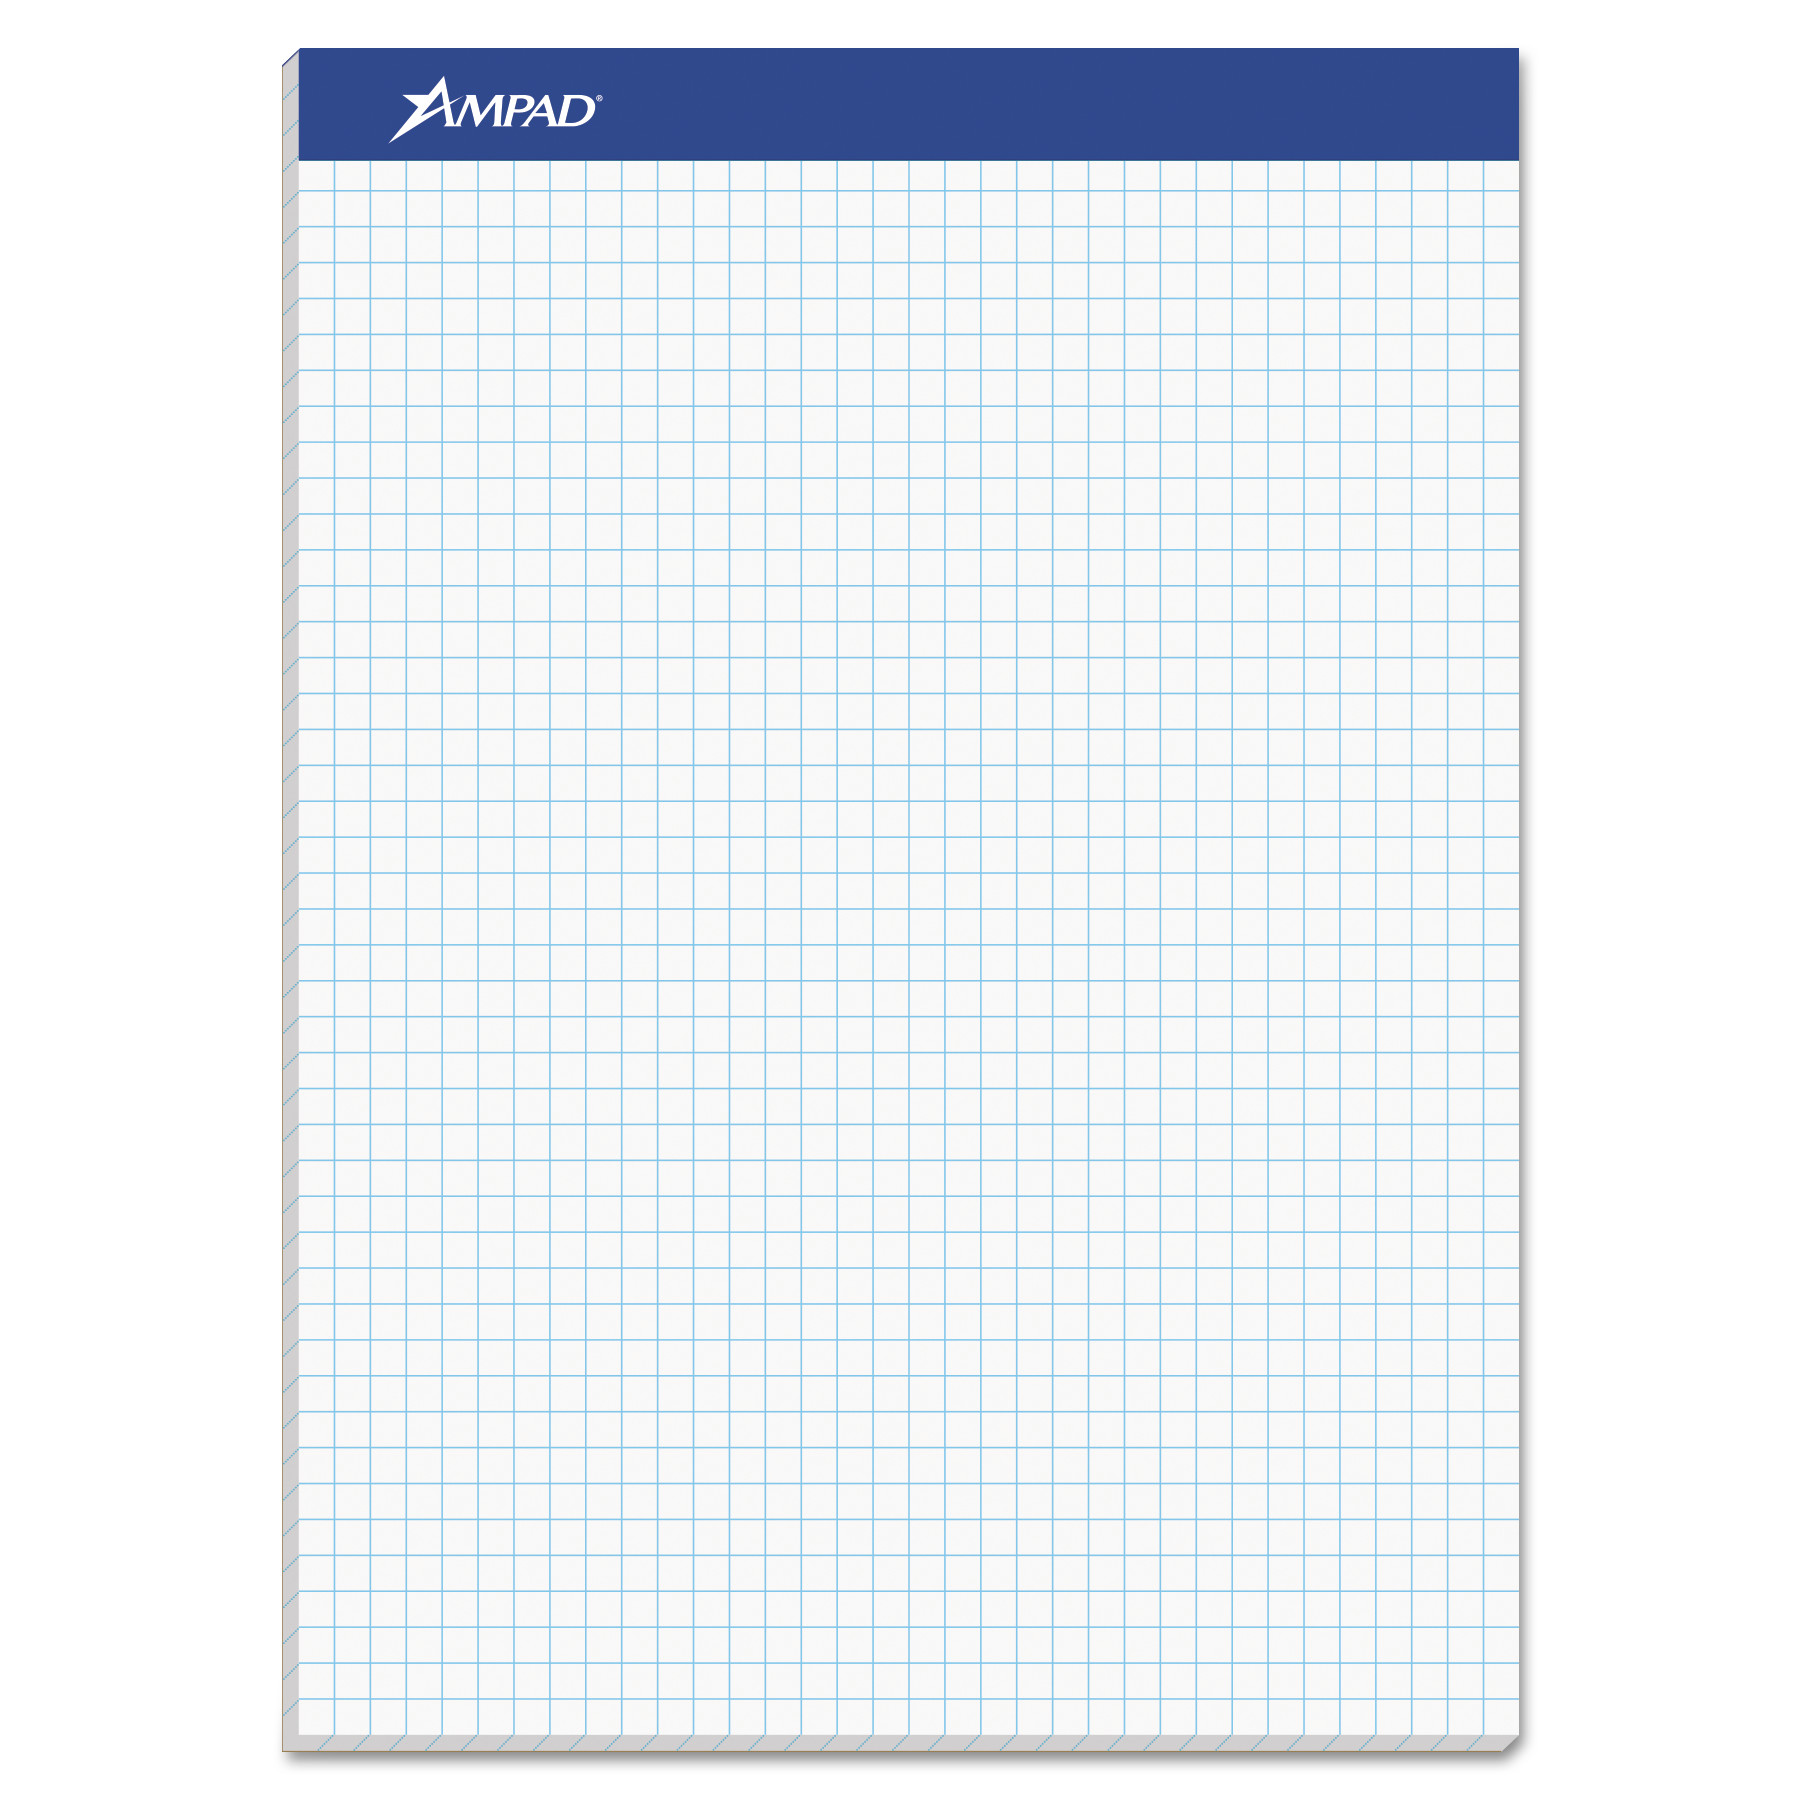 Ampad Quadrille Double Sheets Pad, 8 1/2 x 11 3/4, White, 100 Sheets -TOP20210